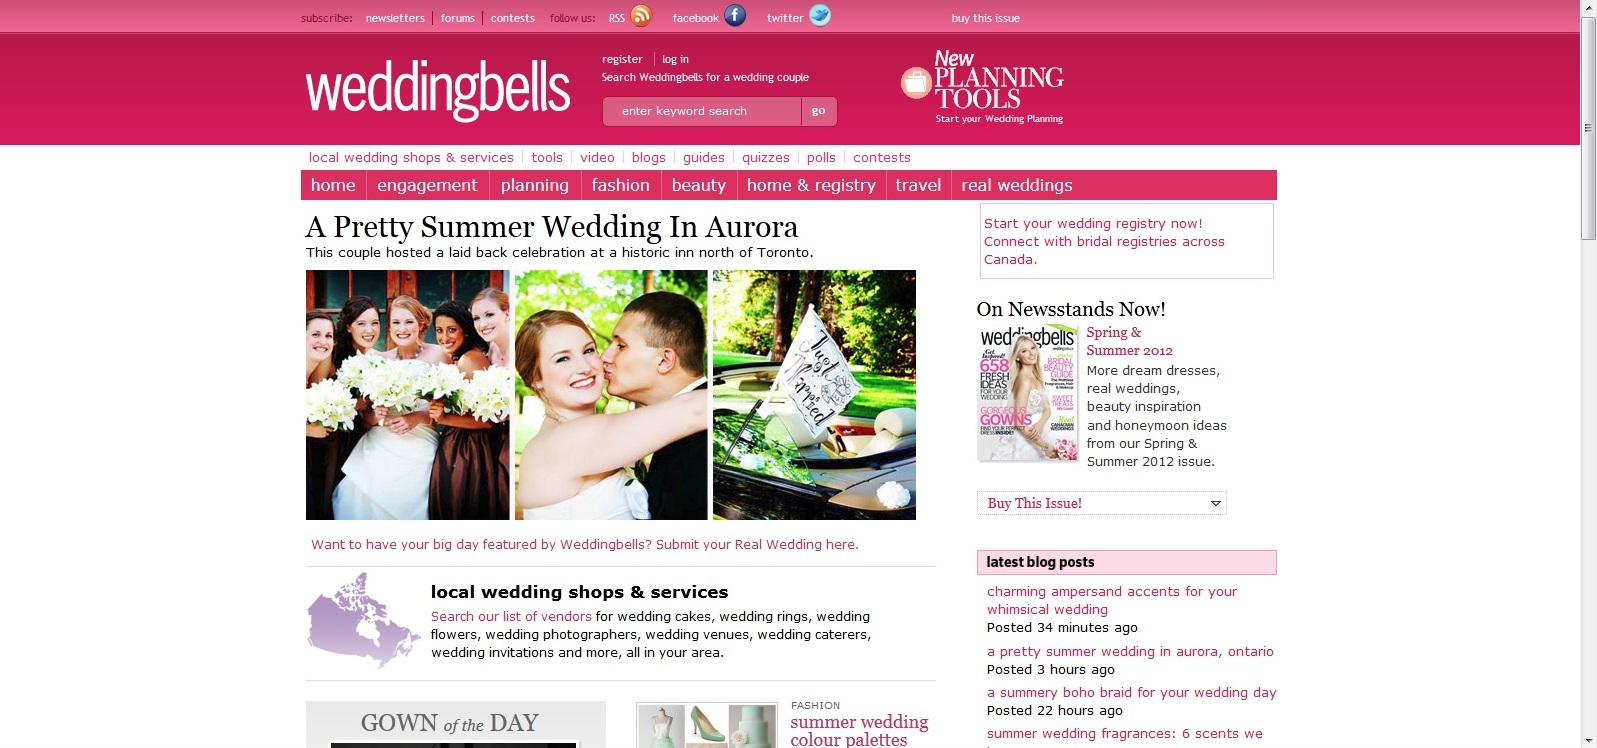 Wedding Bells featured Amanda and Andrew